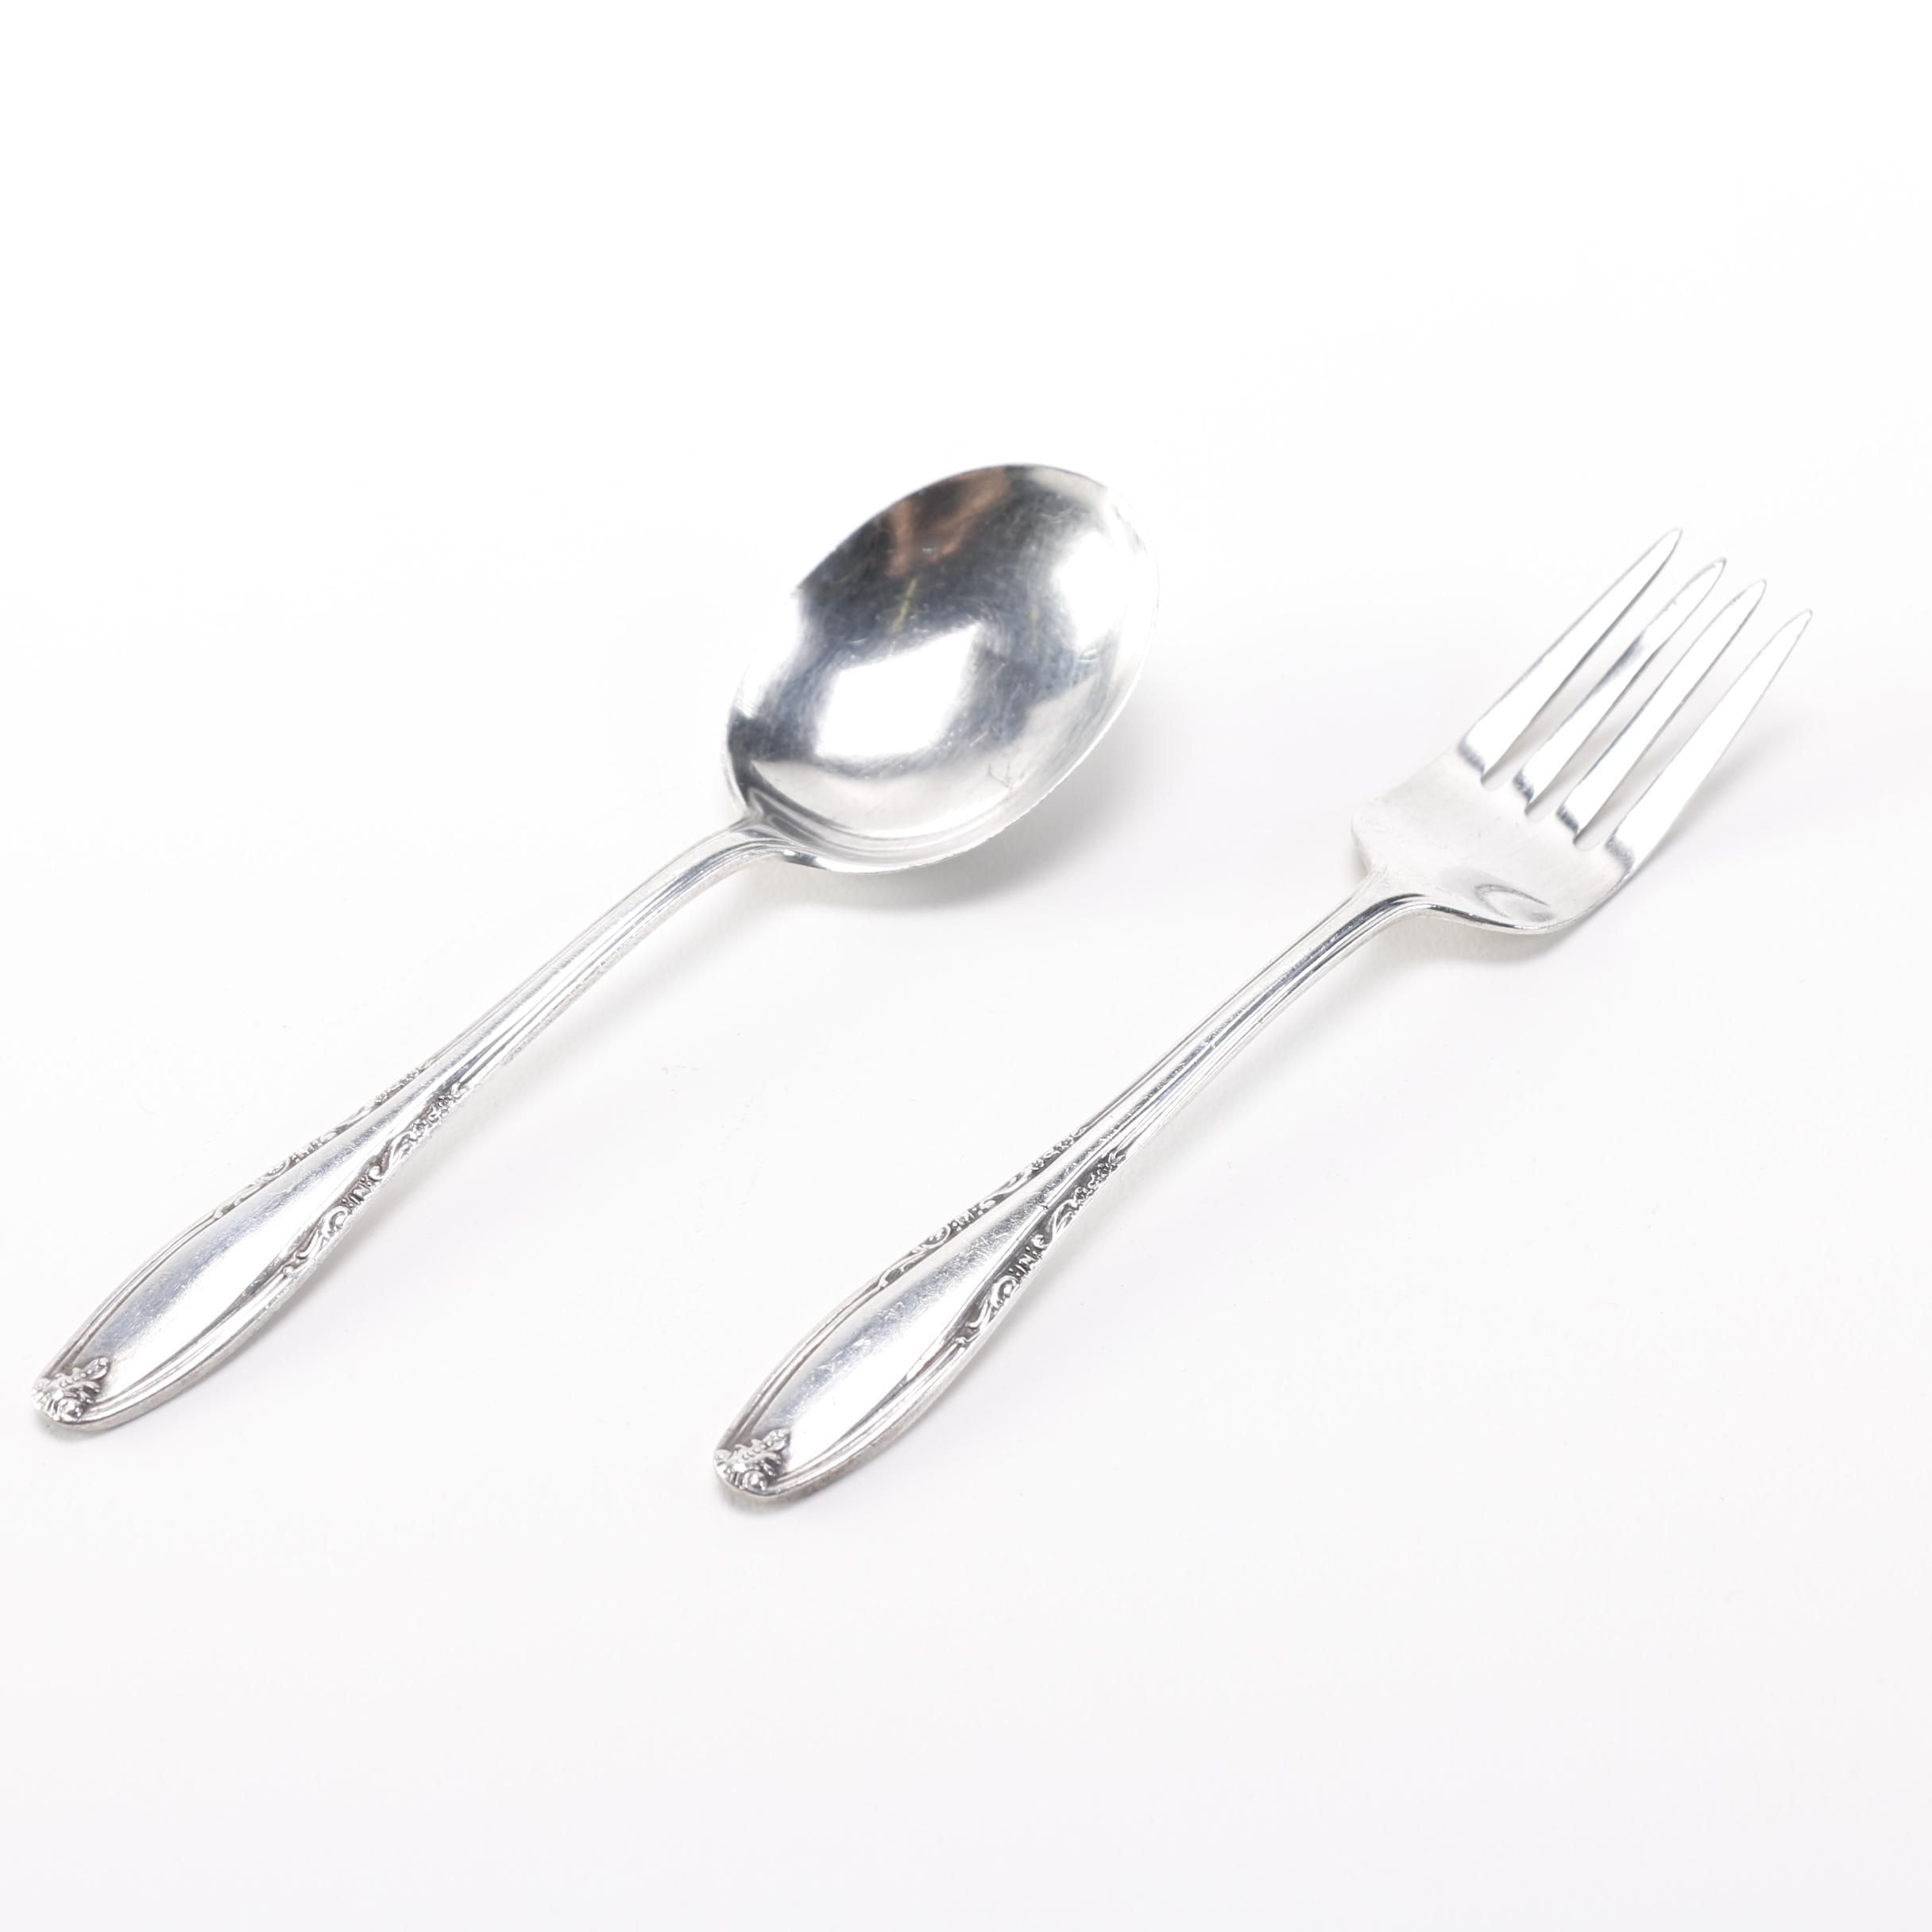 "Manchester Silver Co ""Leonore"" Sterling Silver Infant Spoon and Fork"